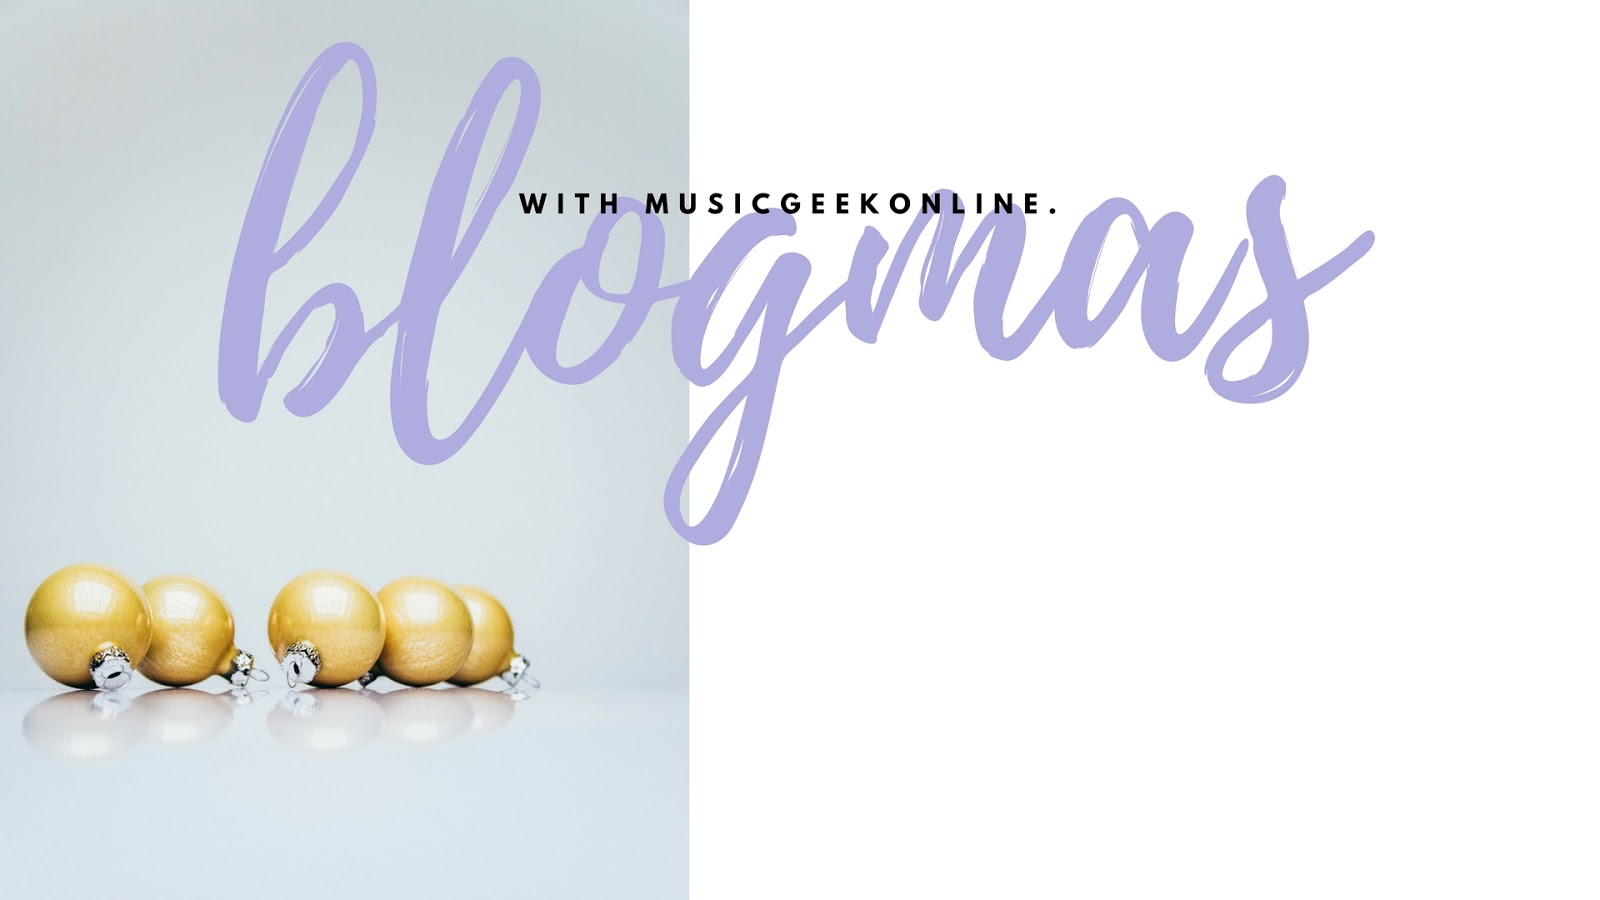 Welcome To Blogmas With MusicGeekOnline